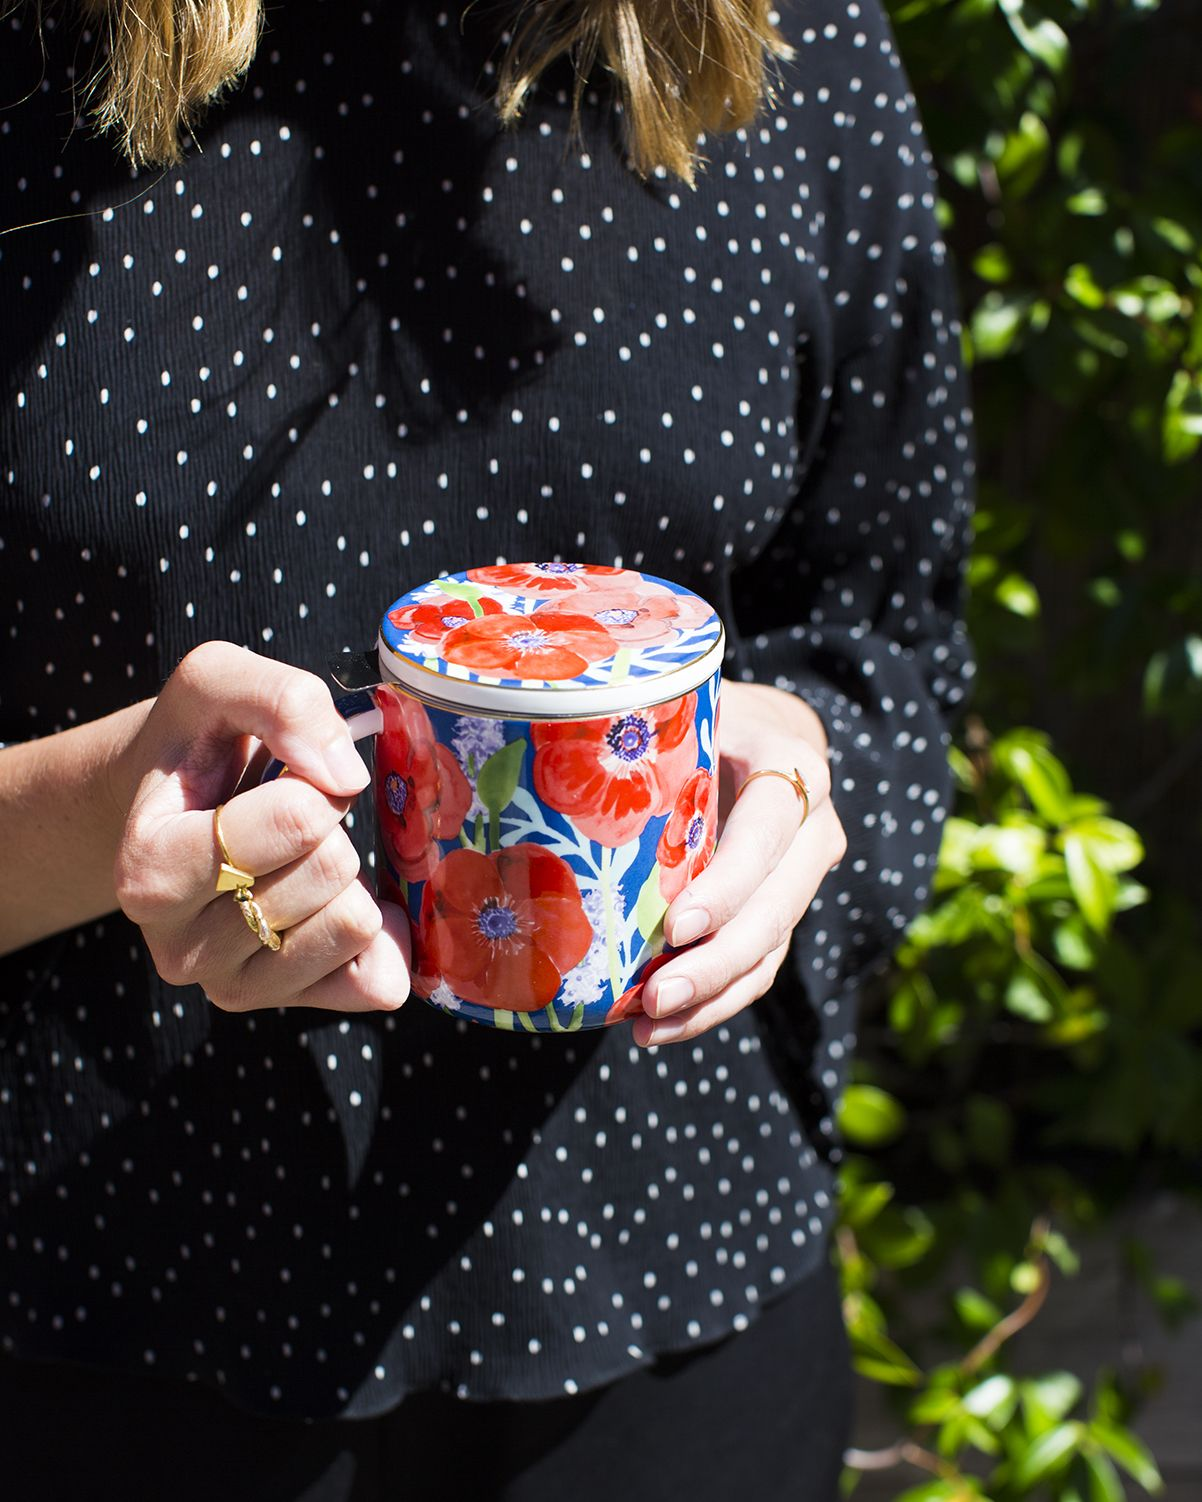 Stop and sip with our In the Garden Poppy Mug! Poppies